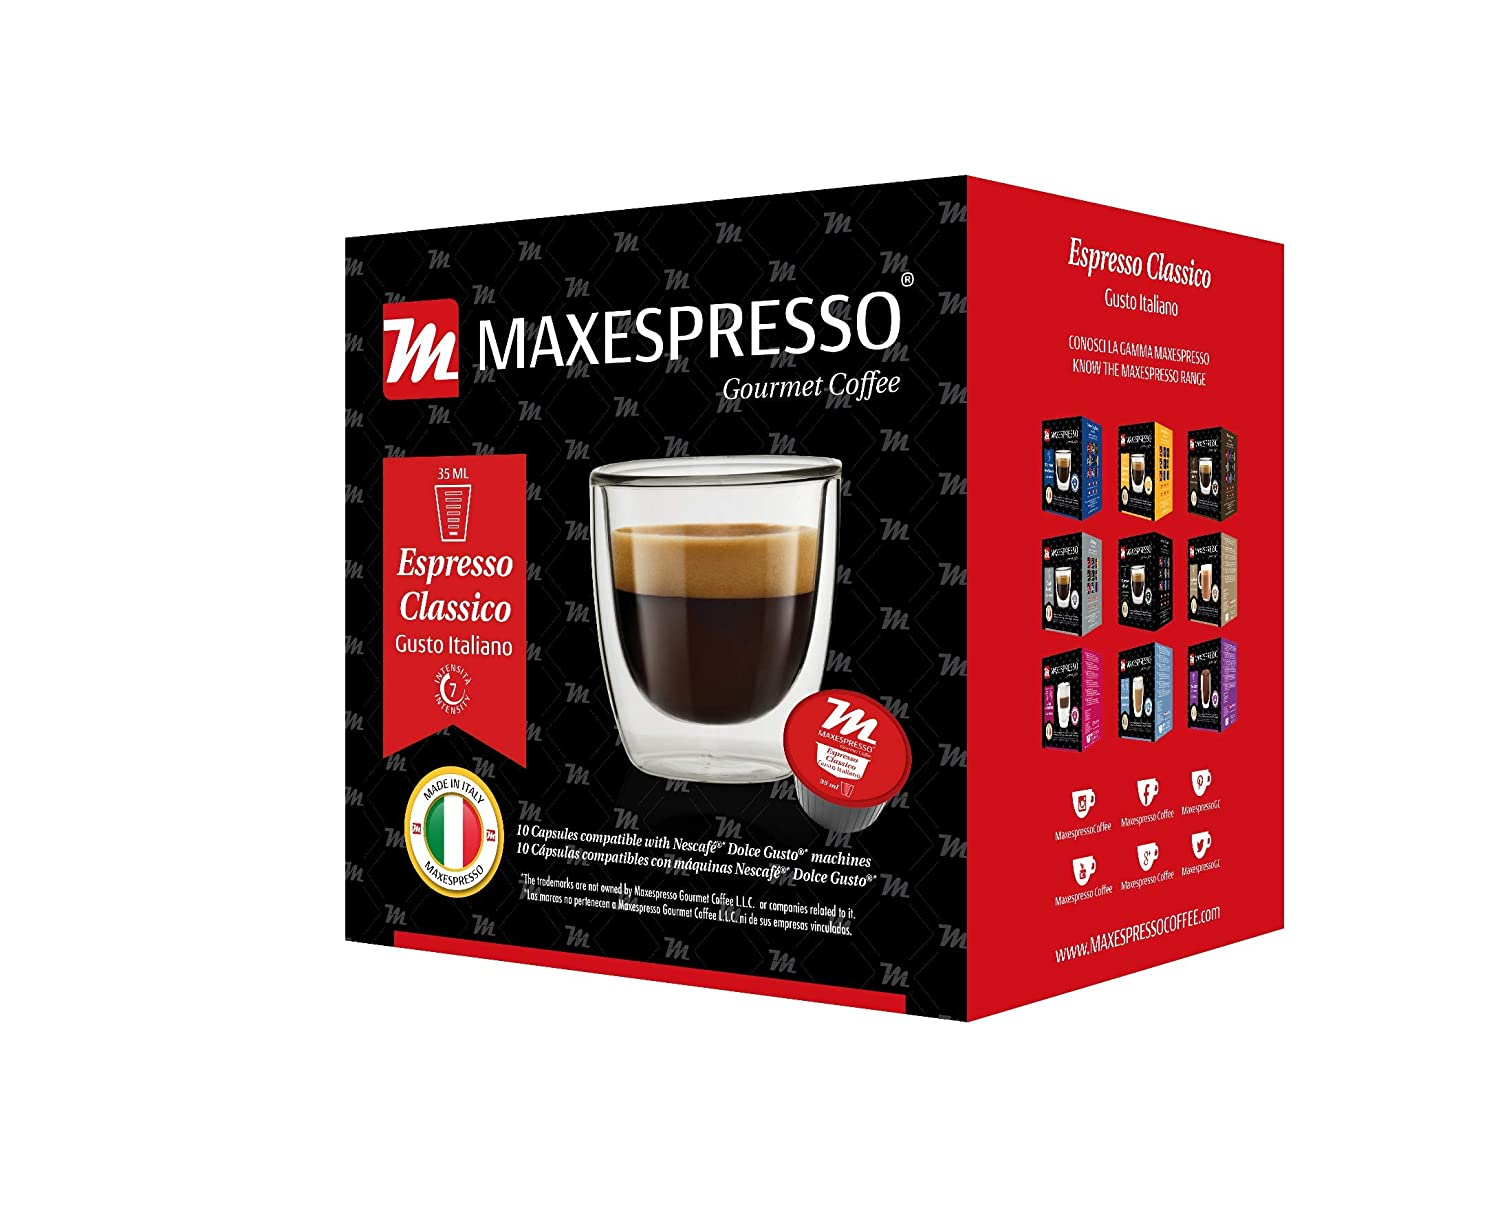 Amazon.com: MaxEspresso Gourmet Coffee,100% Made In Italy. - (Dolce Gusto Compatible Coffee Capsule) (Classico, 1 Pack of 10 Capsules): Kitchen & Dining